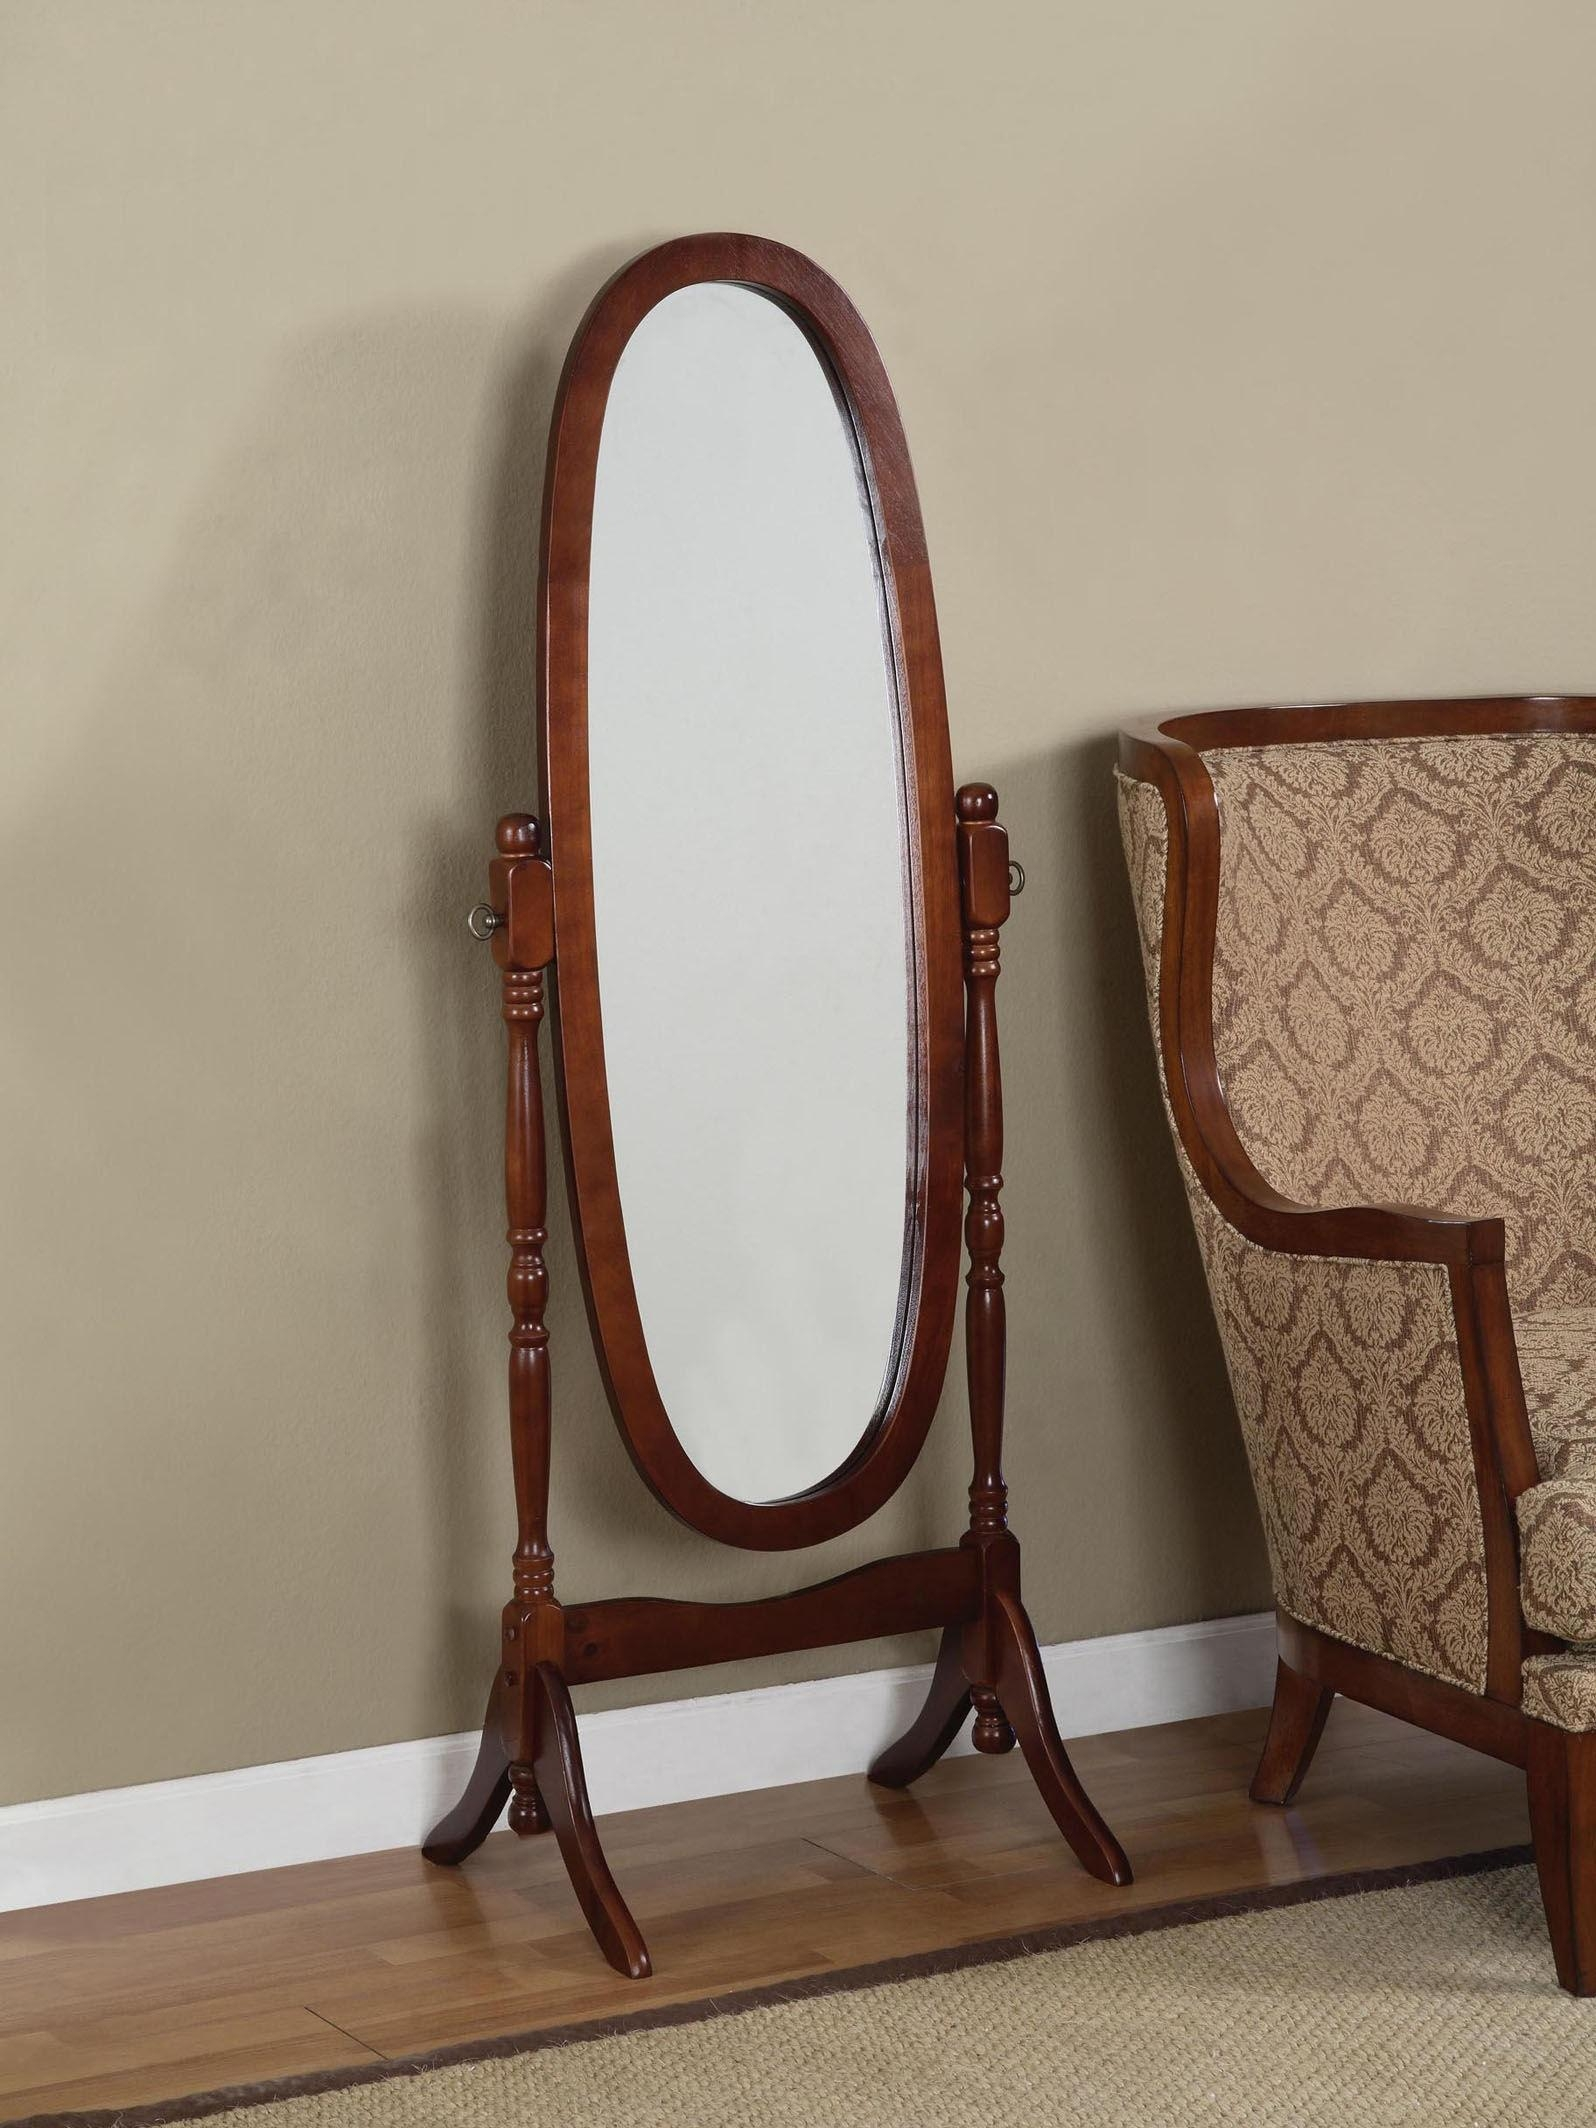 Free Standing Mirror Full Length 61 Cute Interior And Free Intended For Dressing Mirrors Free Standing (Image 10 of 20)